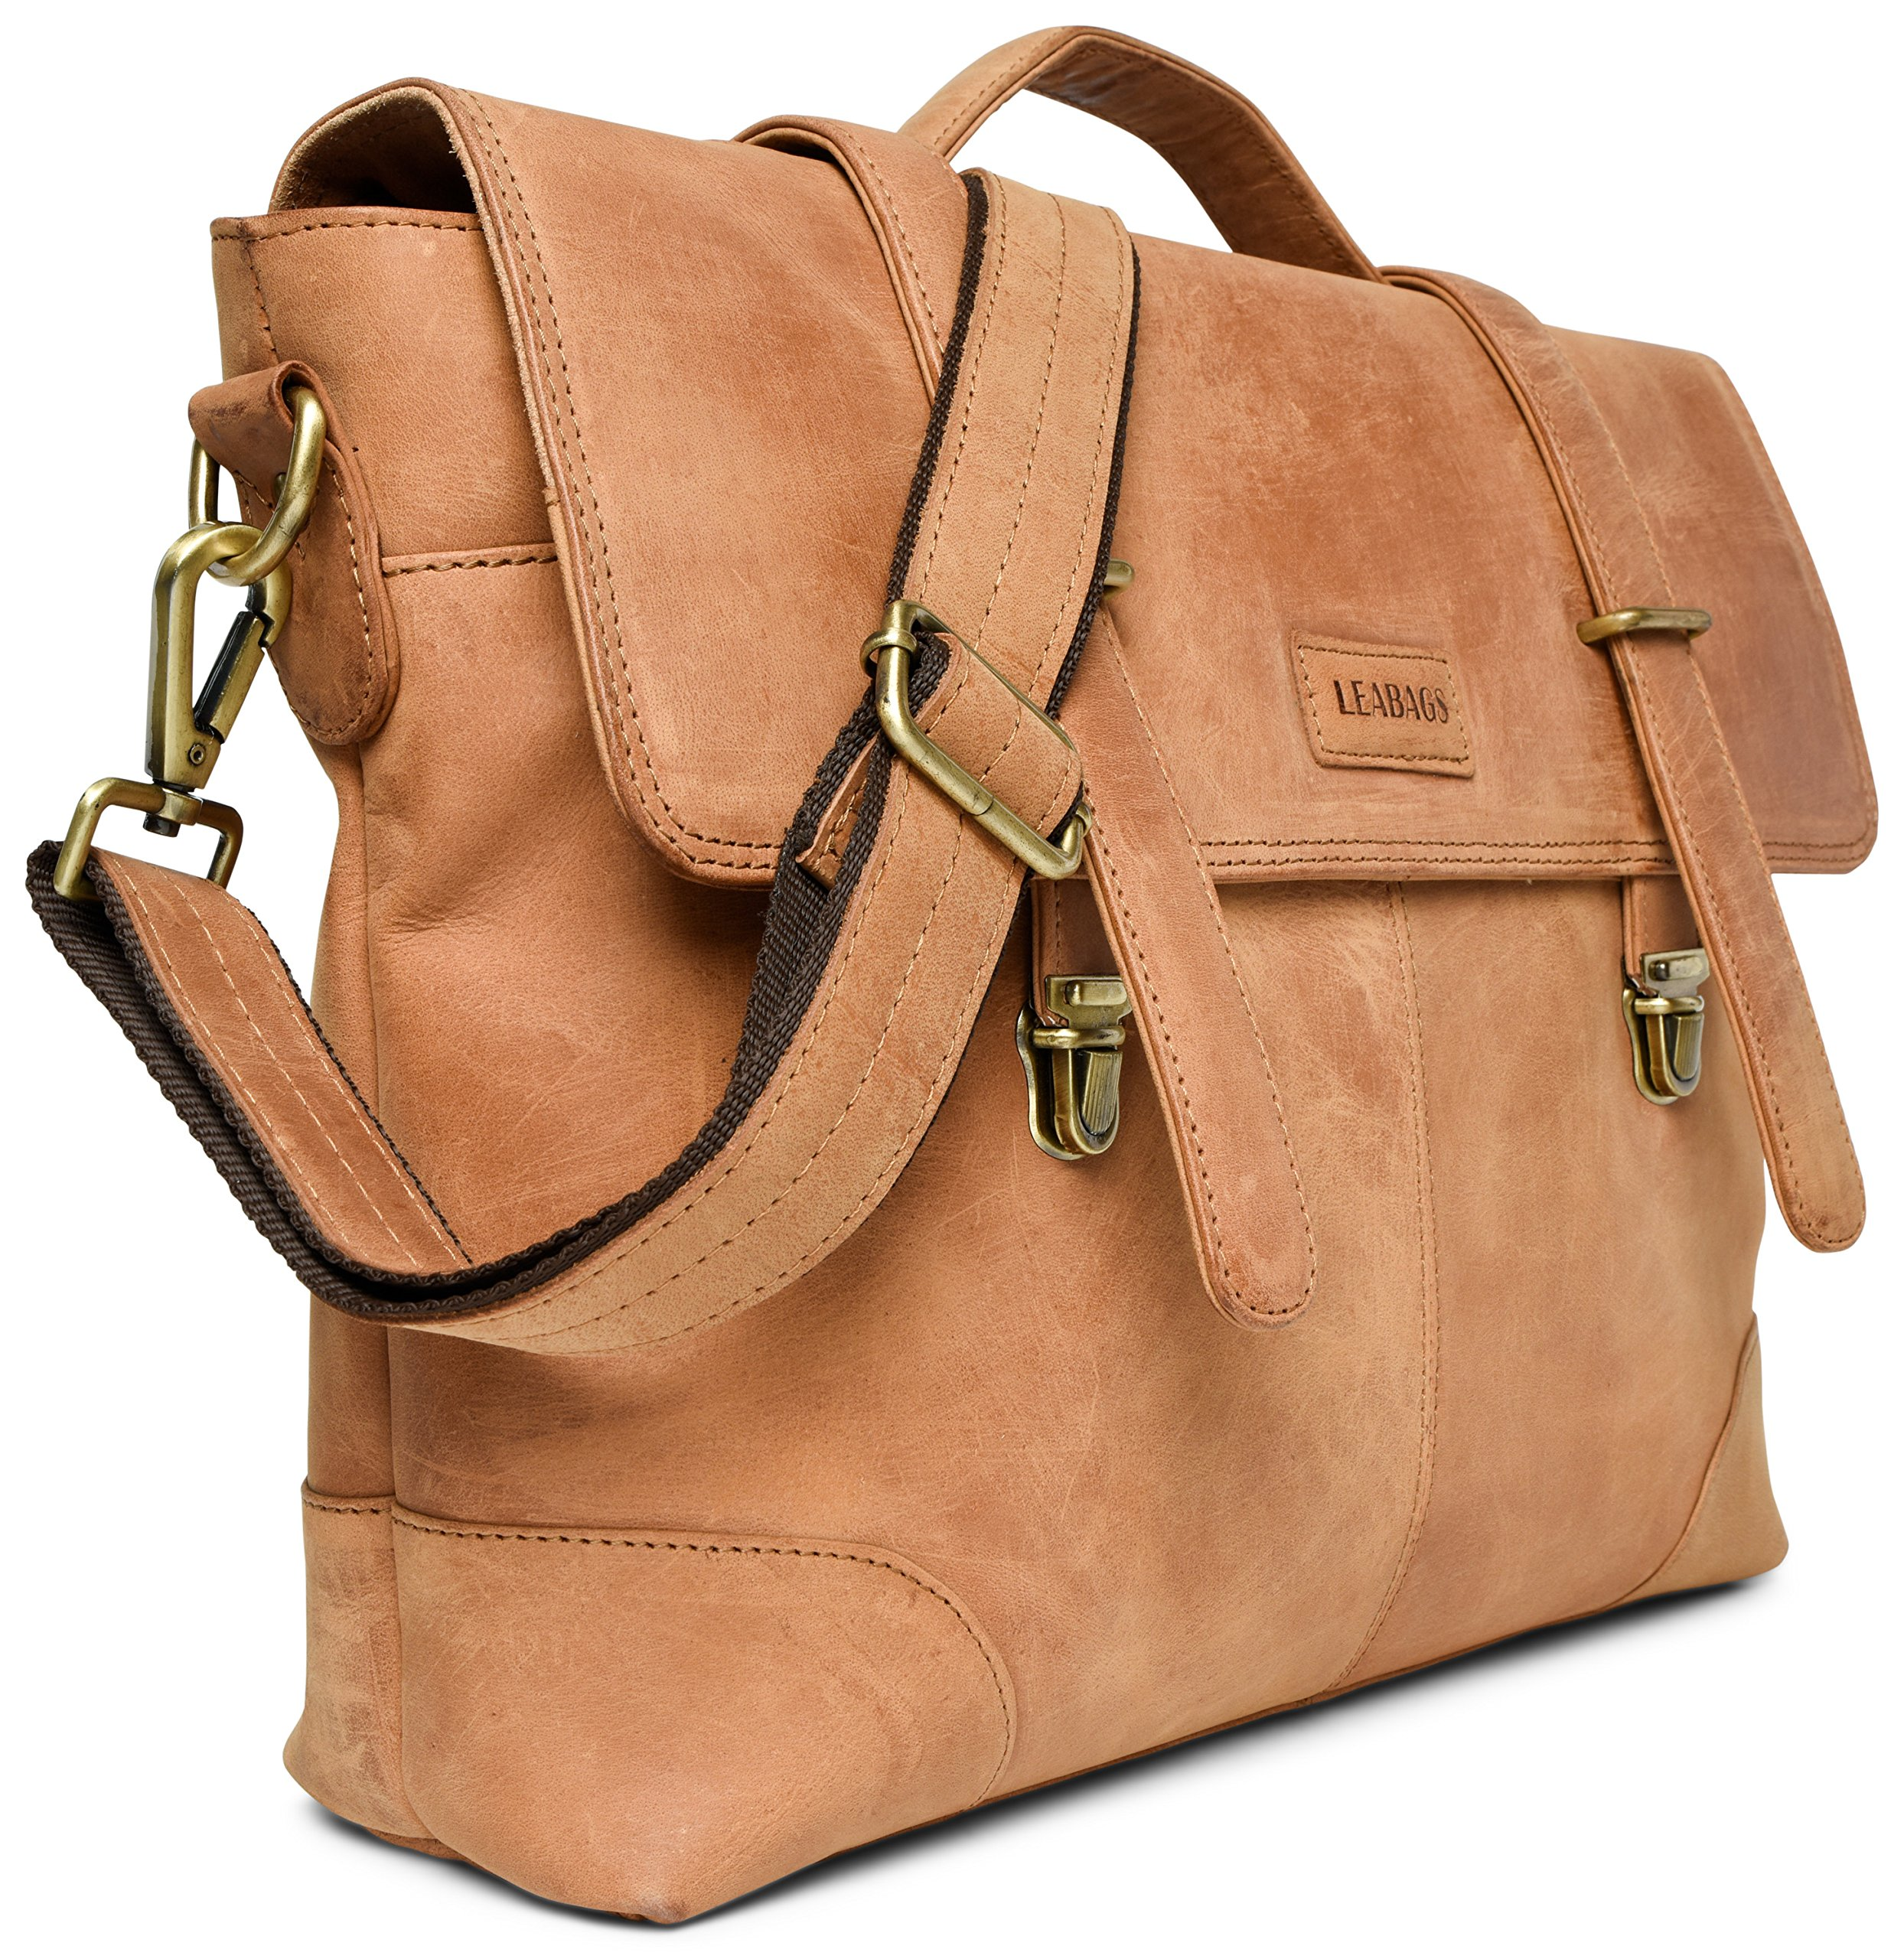 LEABAGS Liverpool genuine buffalo leather briefcase in vintage style - Brown by LEABAGS (Image #3)